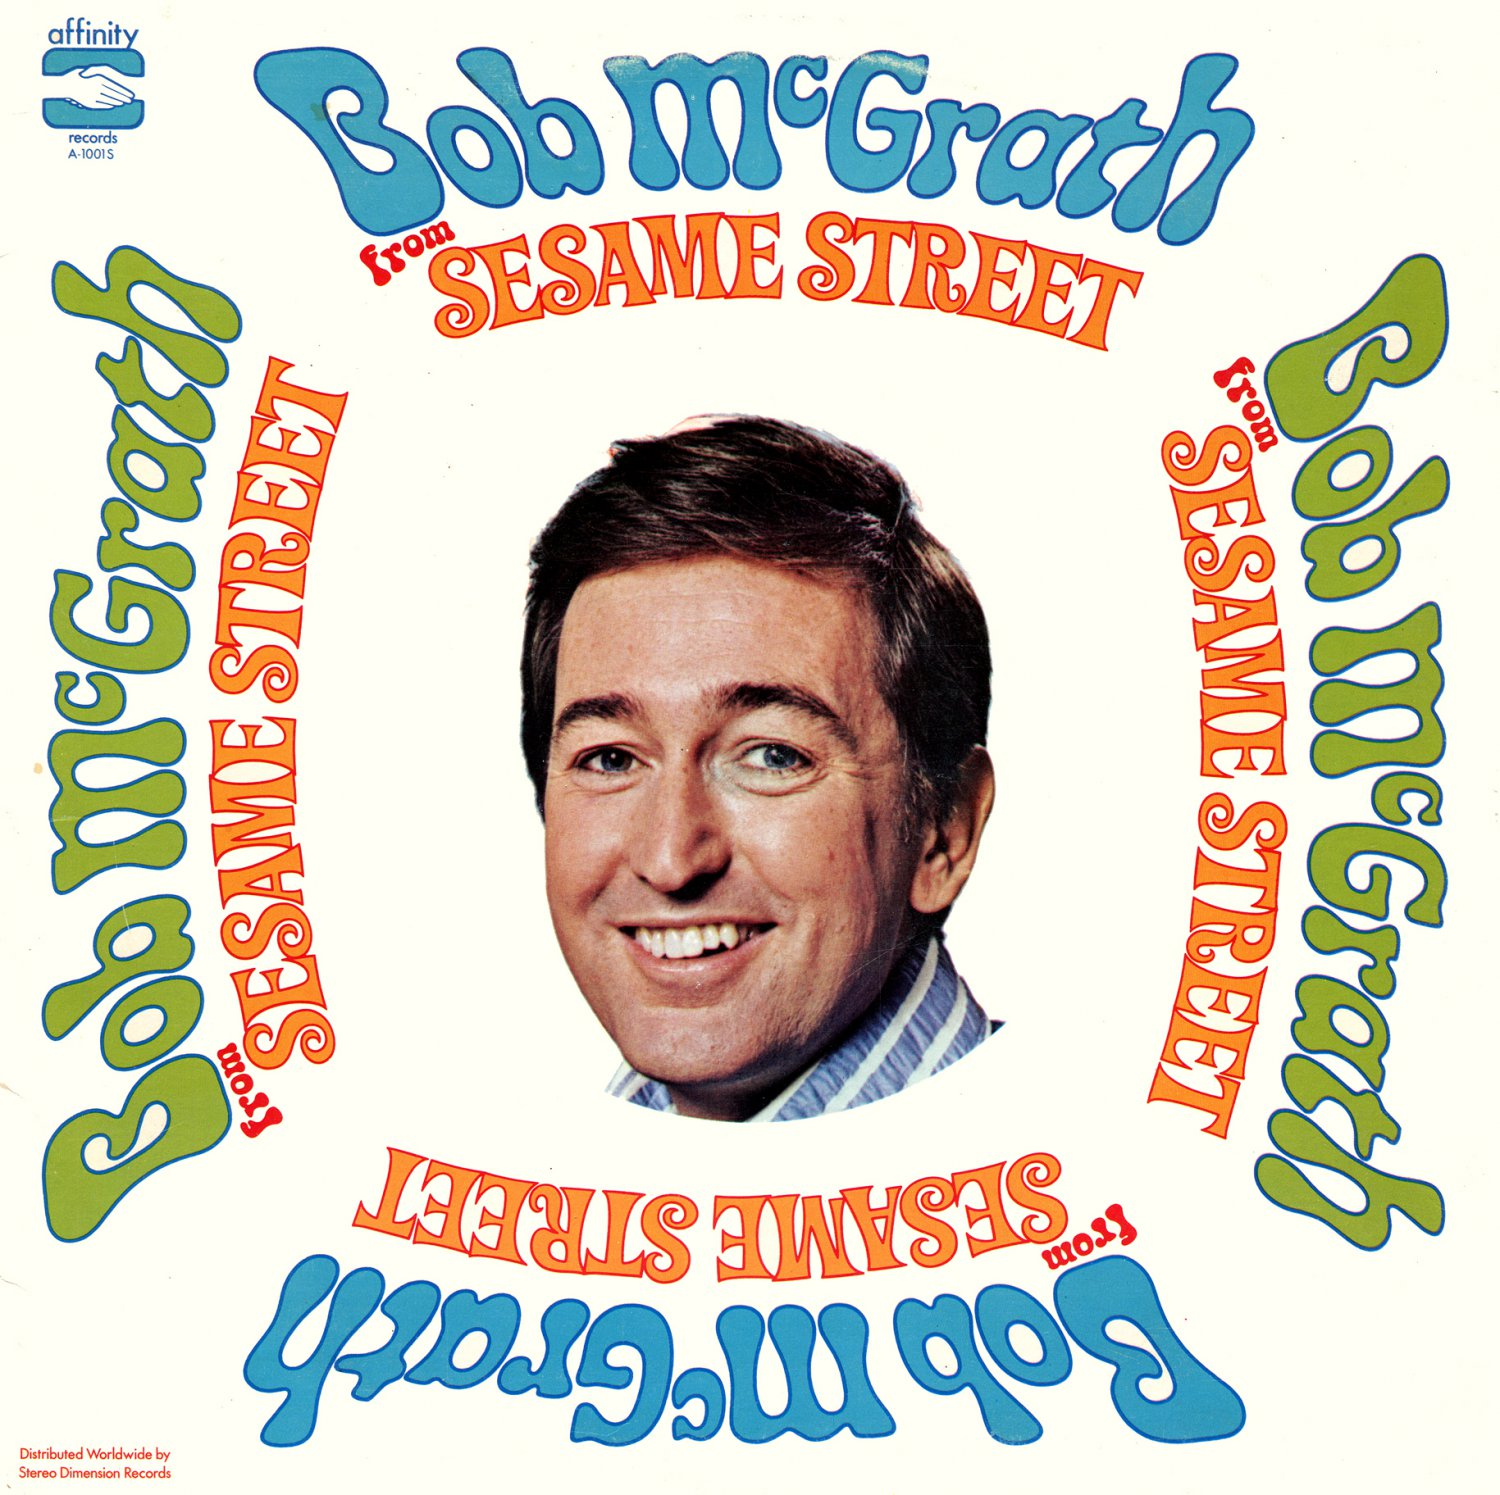 Bob McGrath From Sesame Street - Kids Music Collection LP/CD